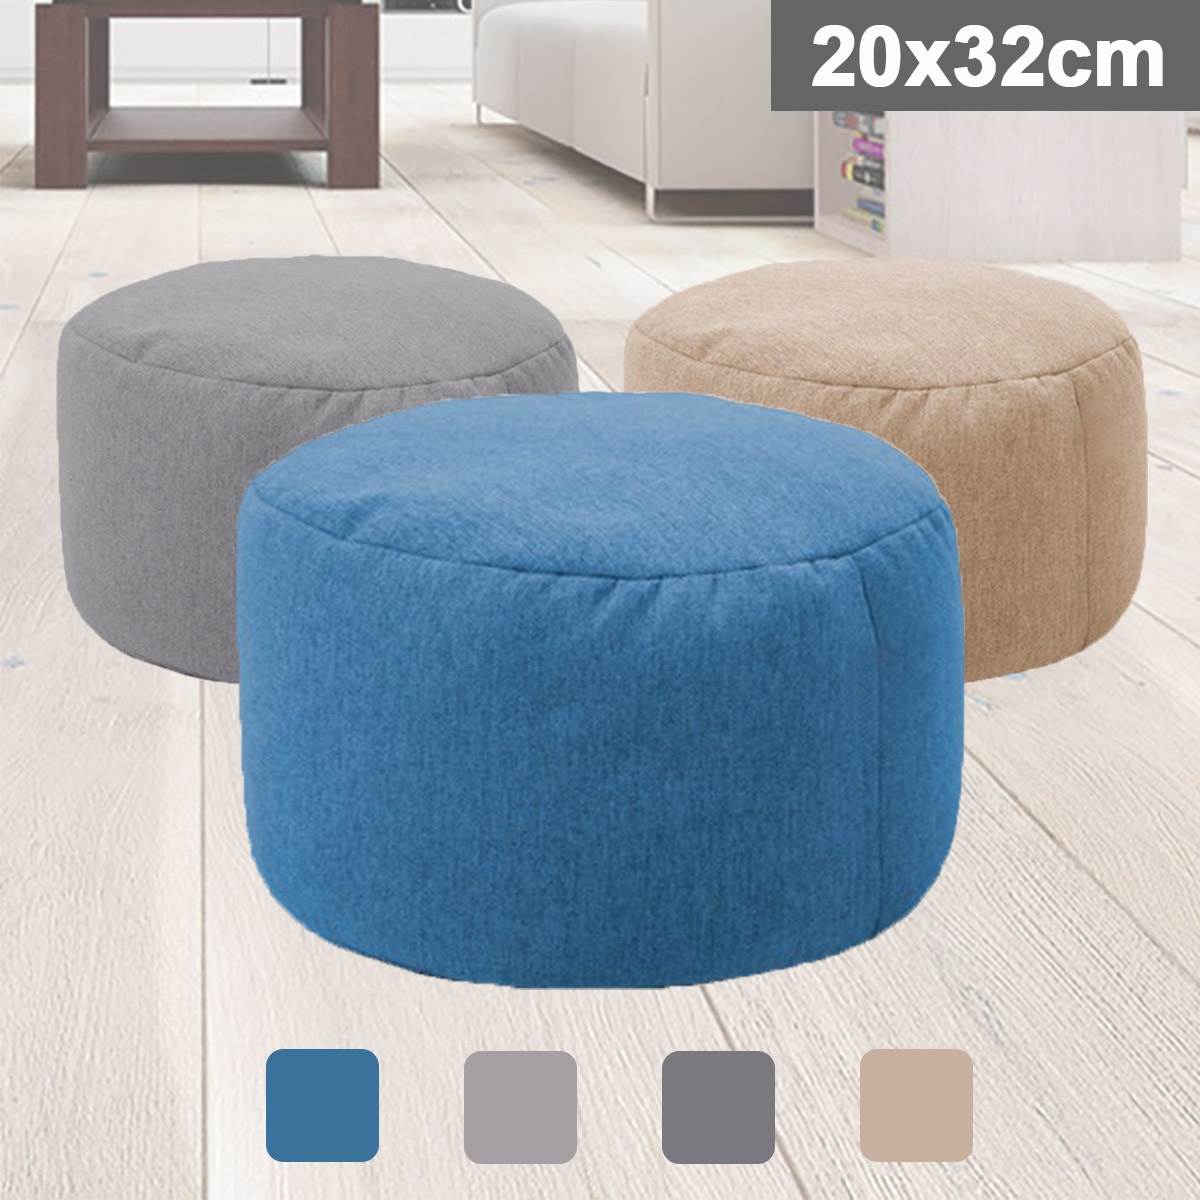 Incredible Us 5 0 Small Round Beanbag Sofas Cover Waterproof Gaming Bed Chair Seat Bean Bag Solid Color Lounger Chair Sofa Cotton Linen Chair Cove In Bean Bag Forskolin Free Trial Chair Design Images Forskolin Free Trialorg